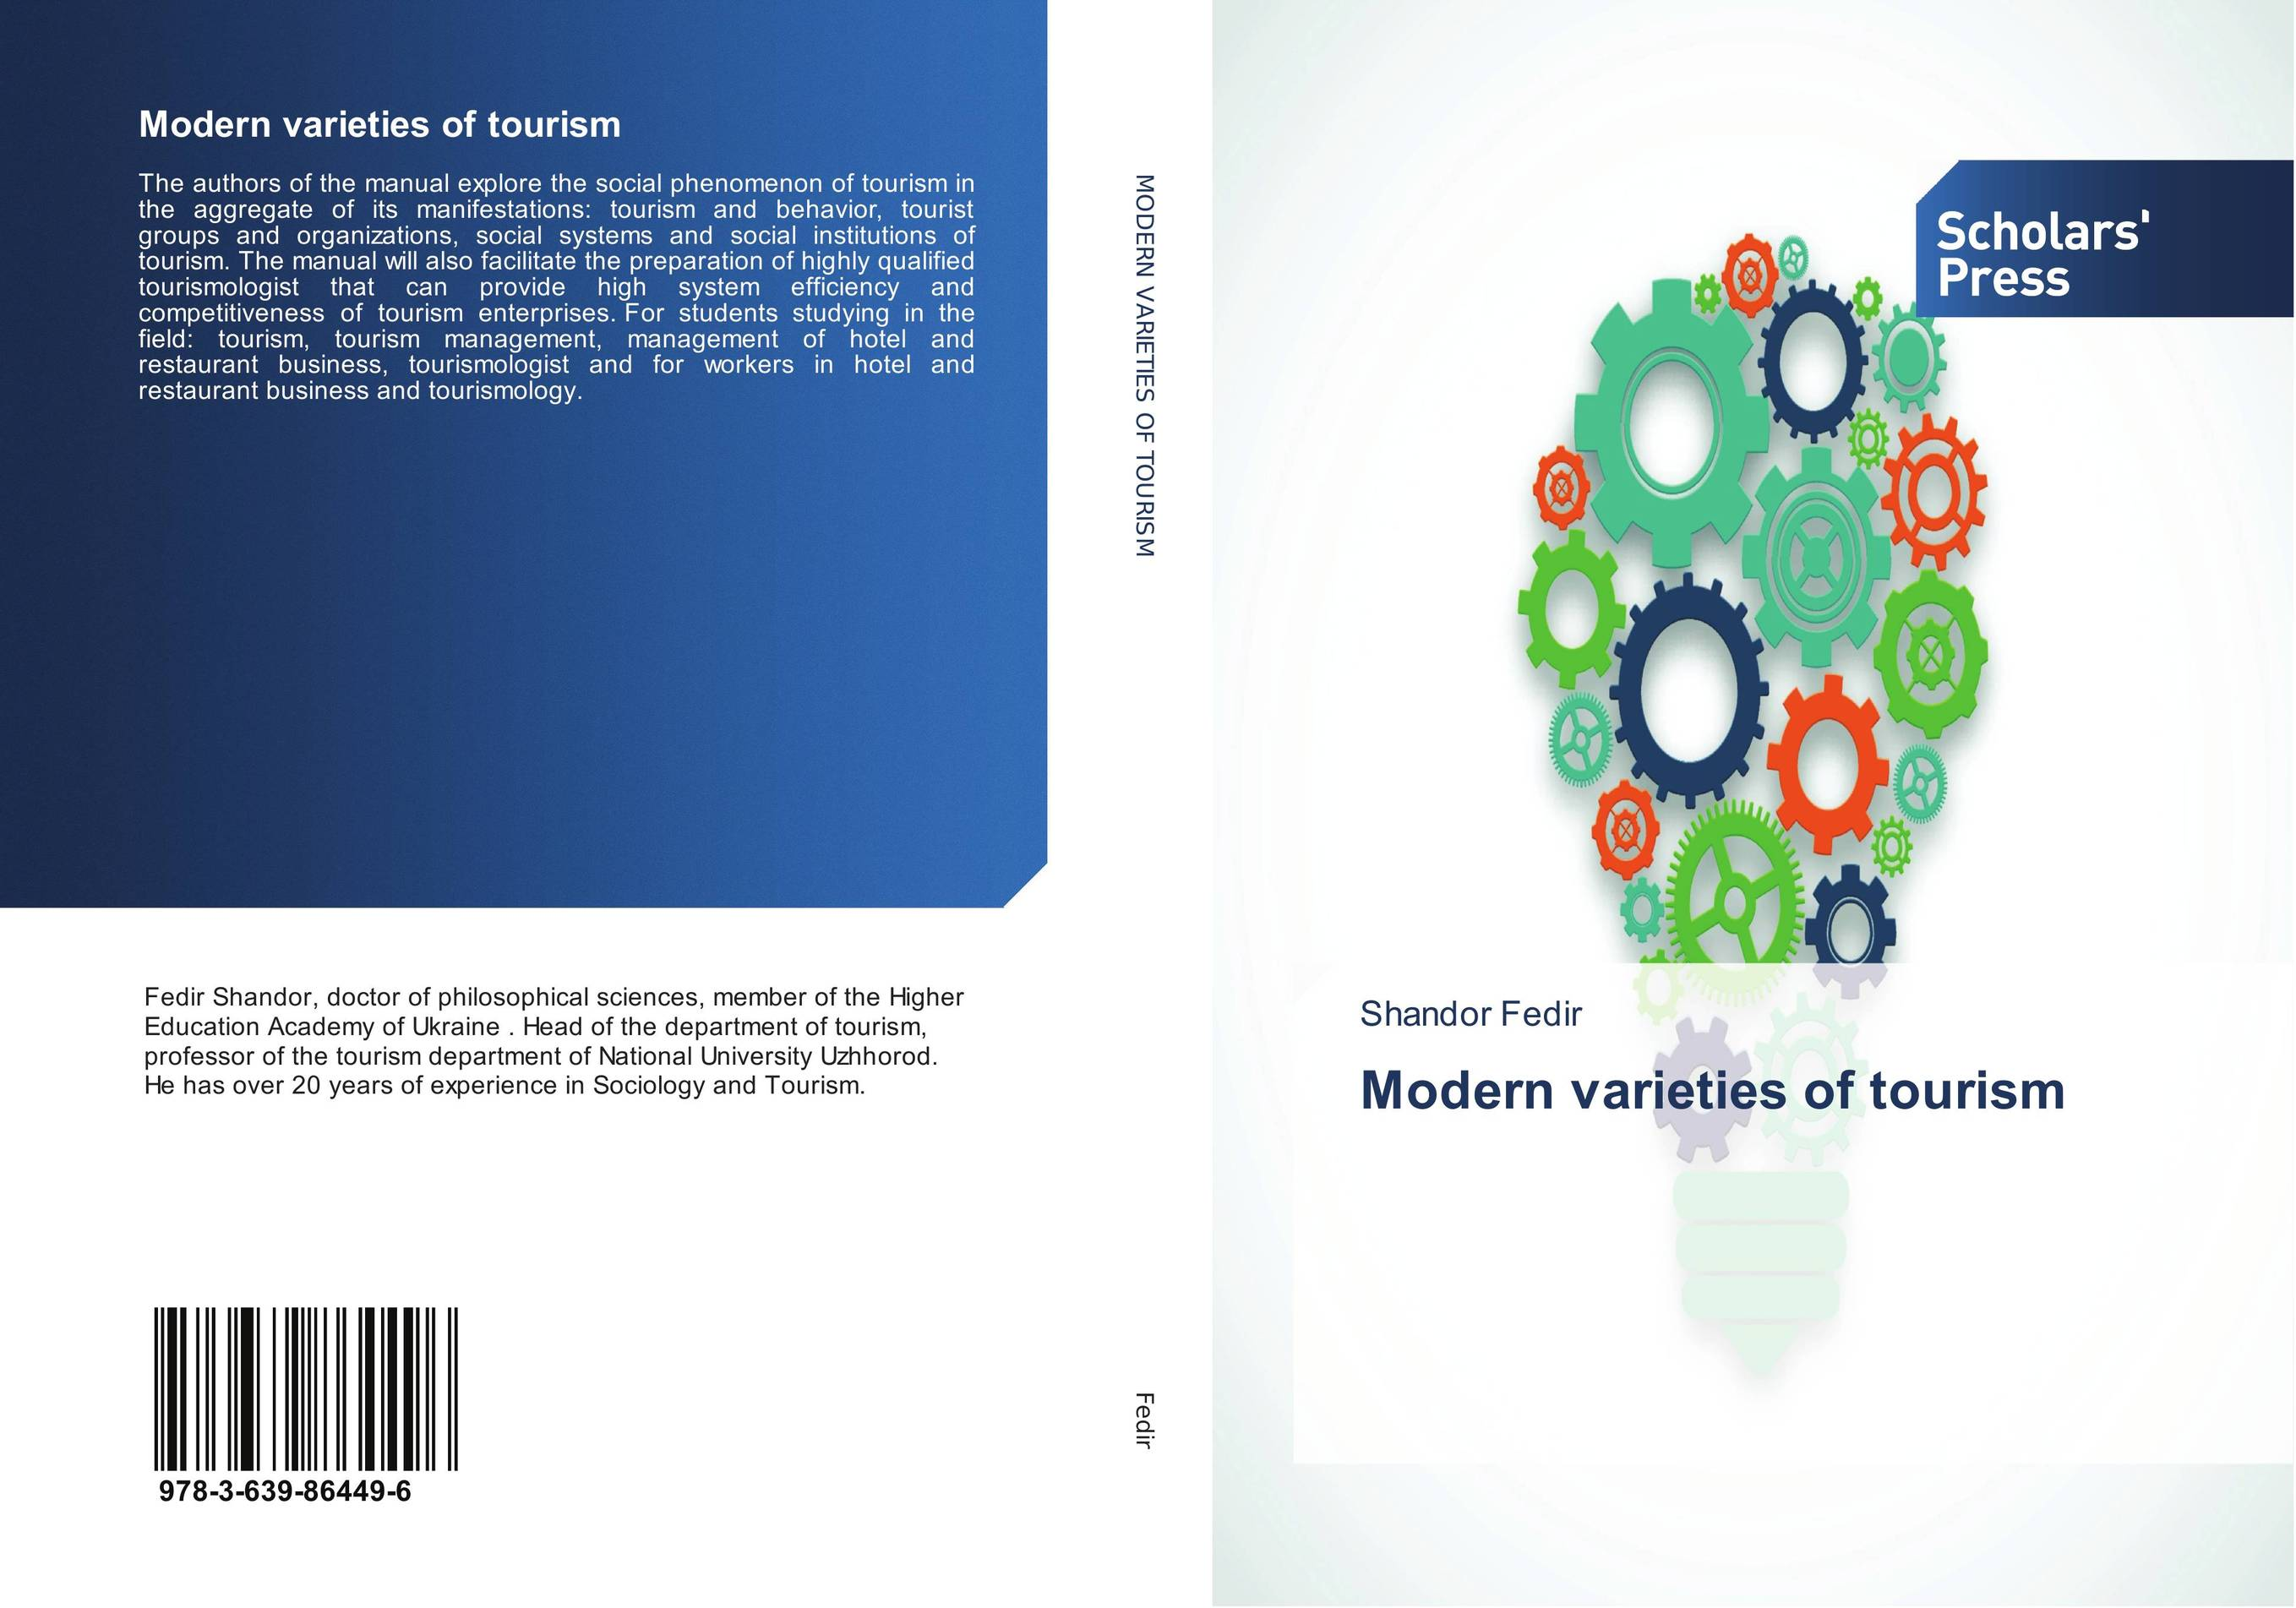 Modern varieties of tourism linguistic diversity and social justice